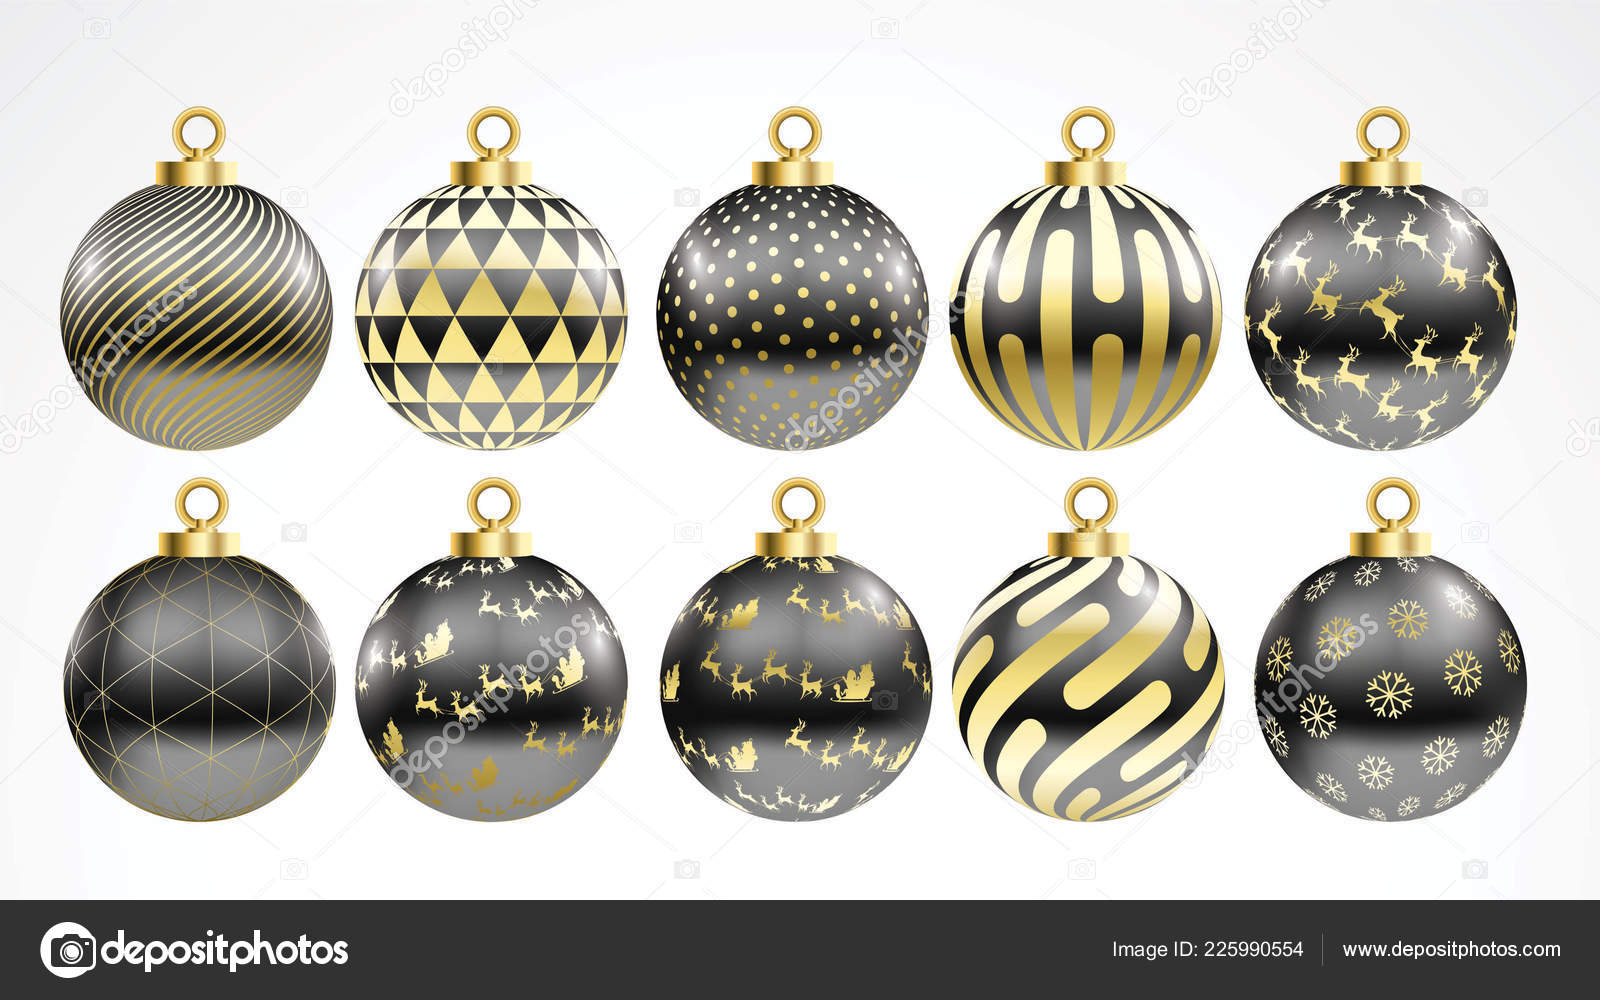 Black Christmas Ornaments.Set Vector Gold Black Christmas Balls Ornaments Golden